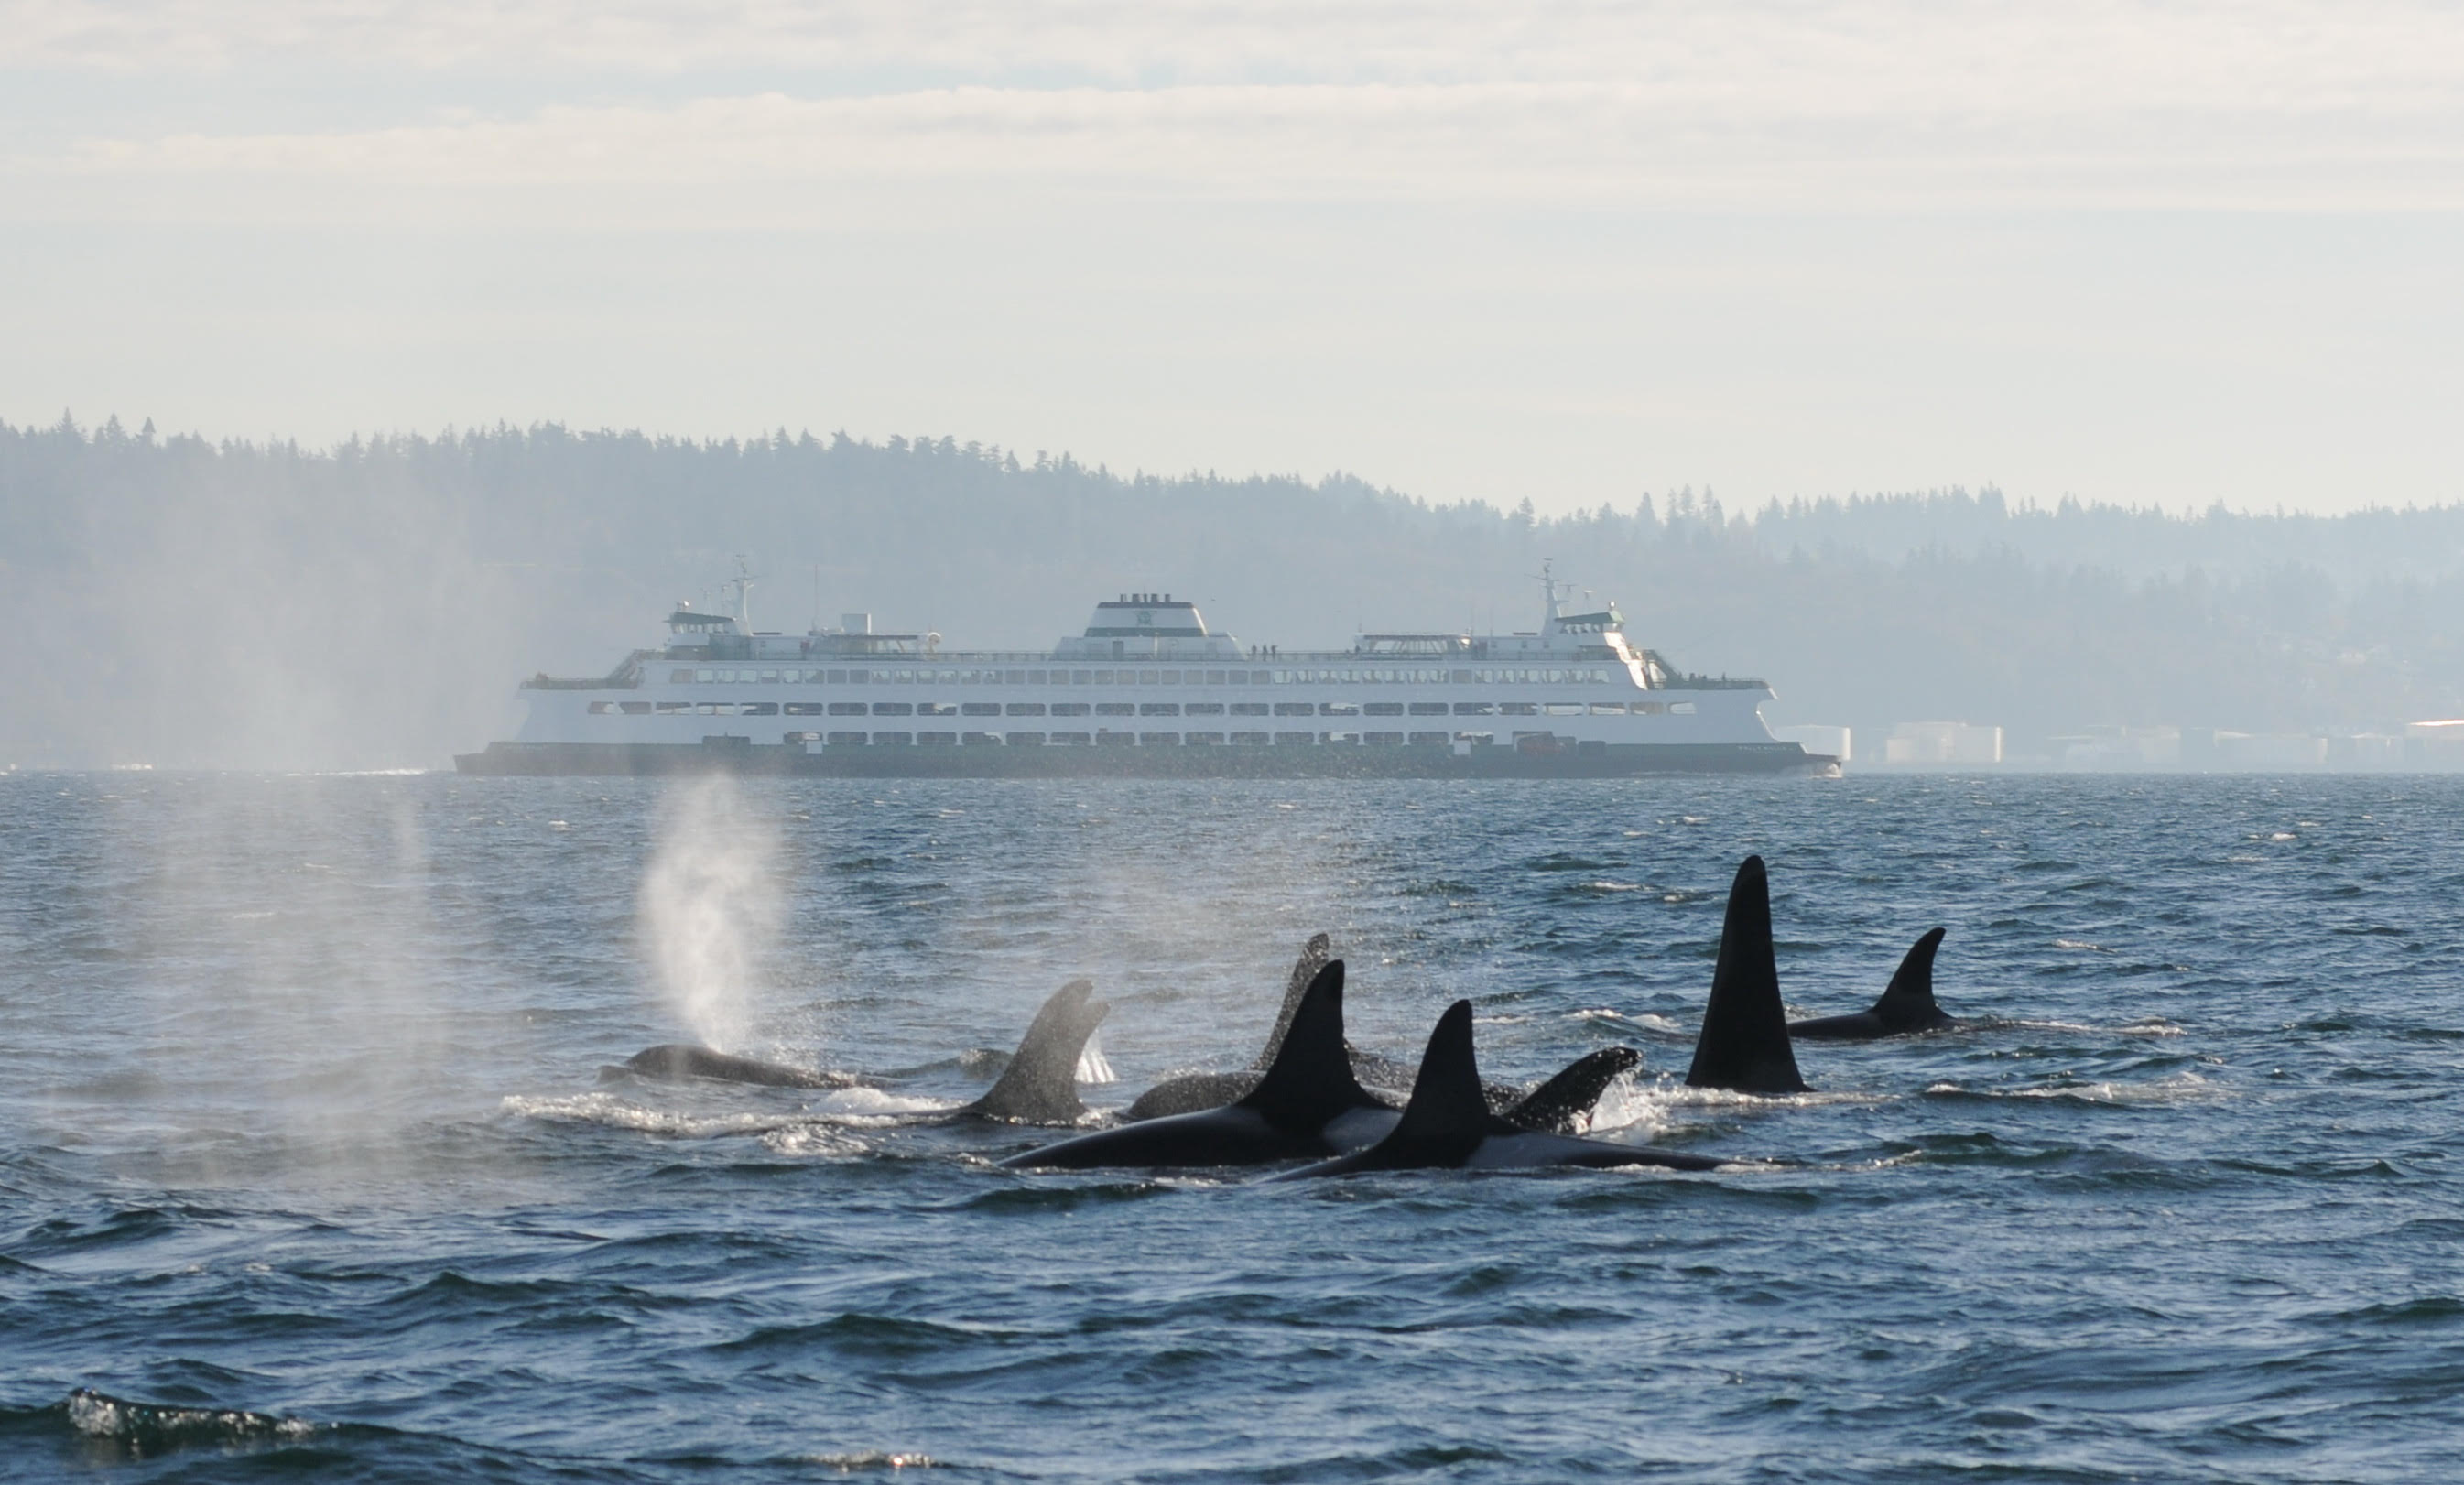 A pod of killer whales, an endangered species, swims near Seattle. By using eDNA from seawater samples, marine biologists can often detect rare species like the killer whale without seeing them. Credit: C. Emmons, NOAA Fisheries